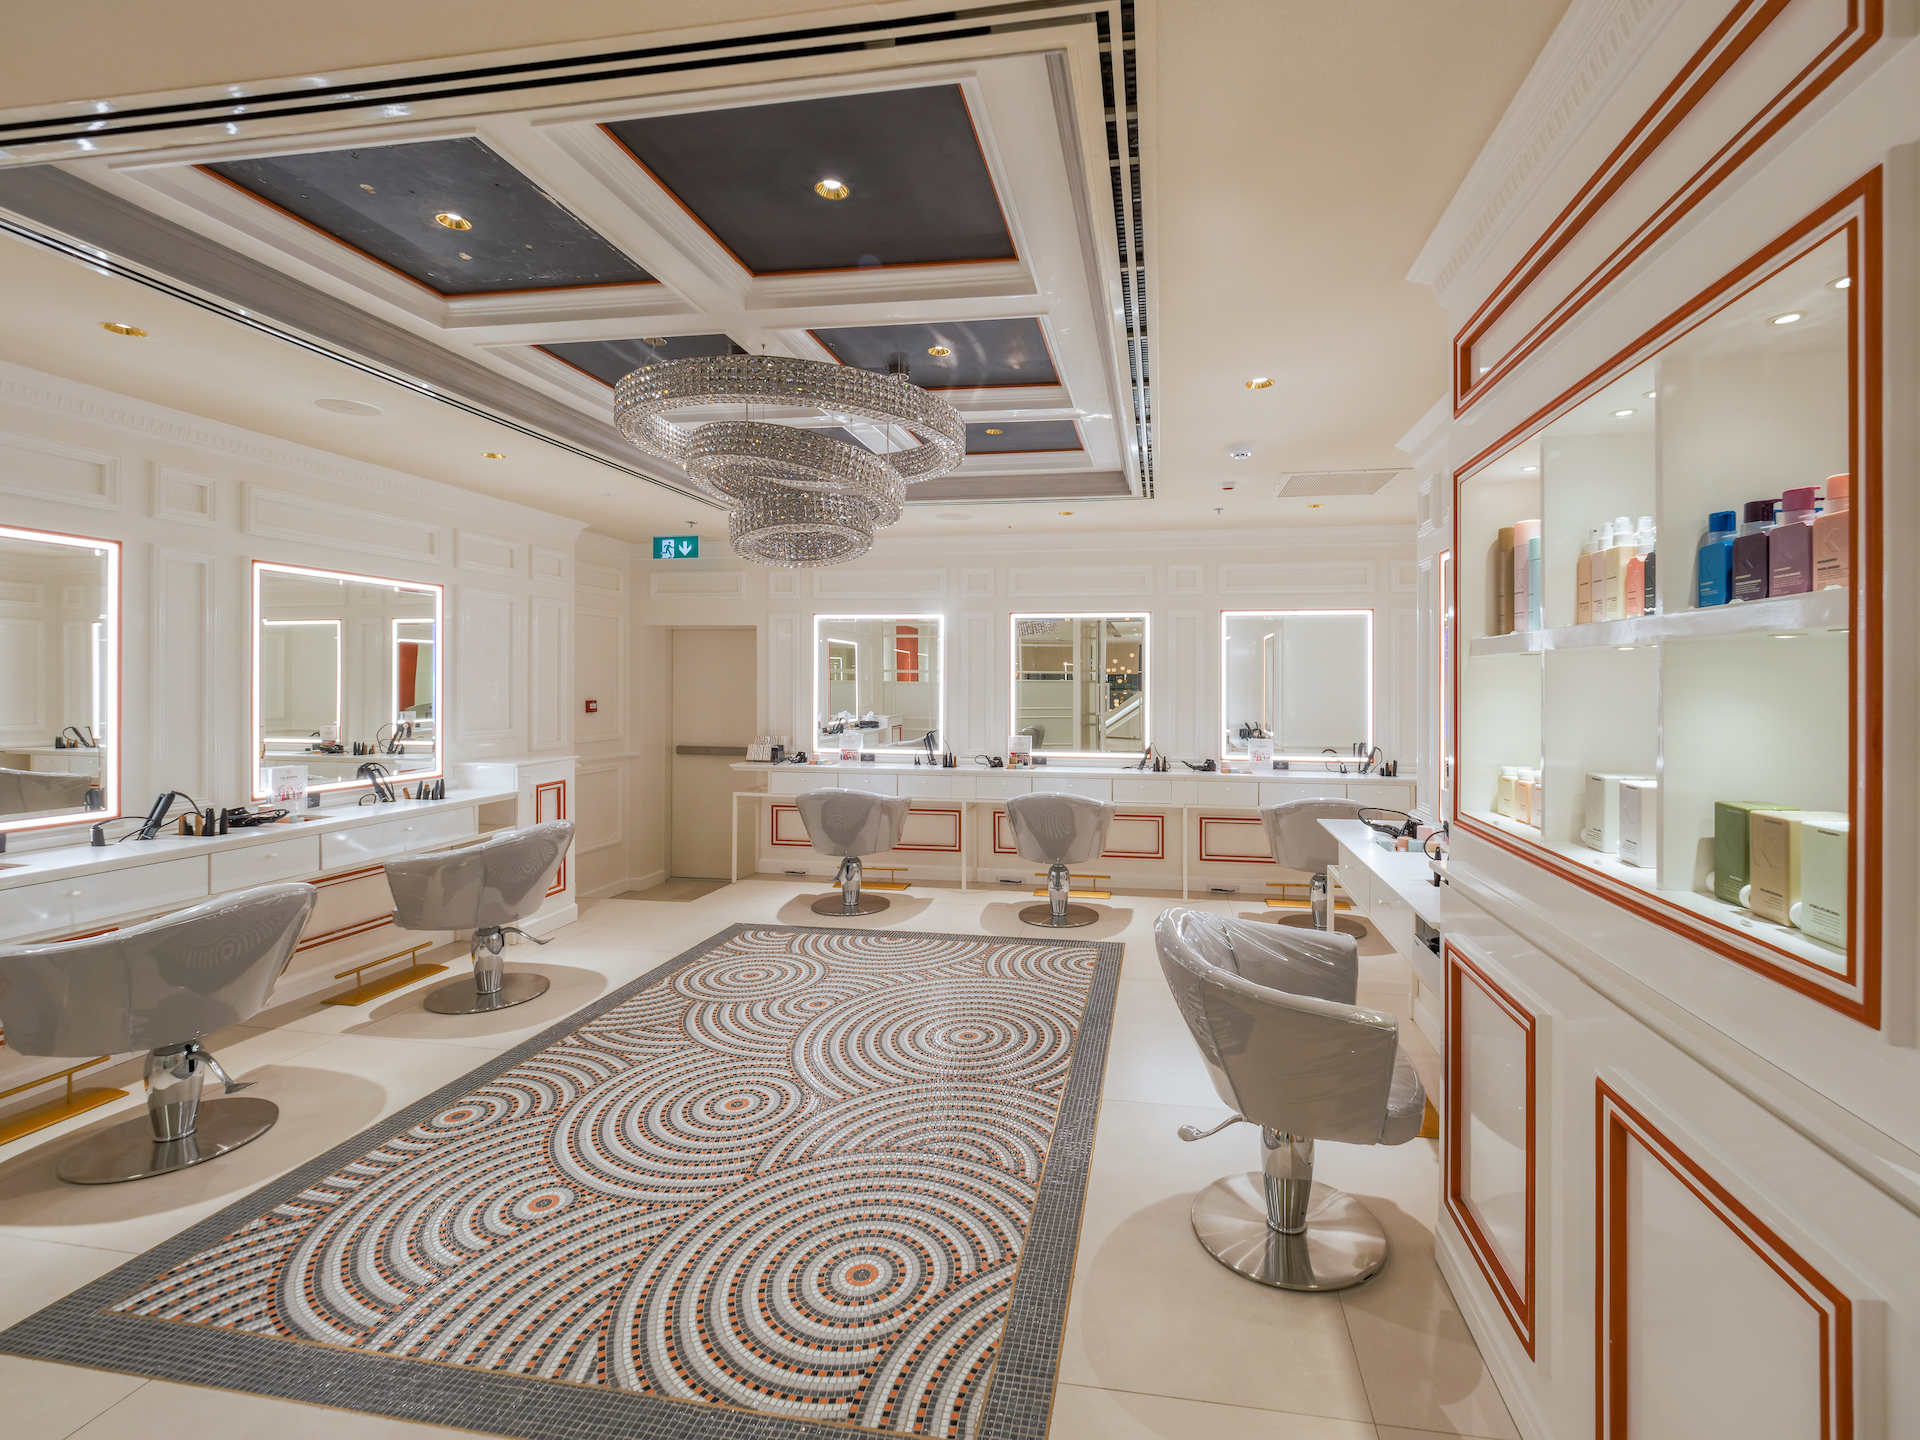 Gdm Interiors Gives An Understated Elegance To The Nail Spa In Dubai Marina Design Middle East